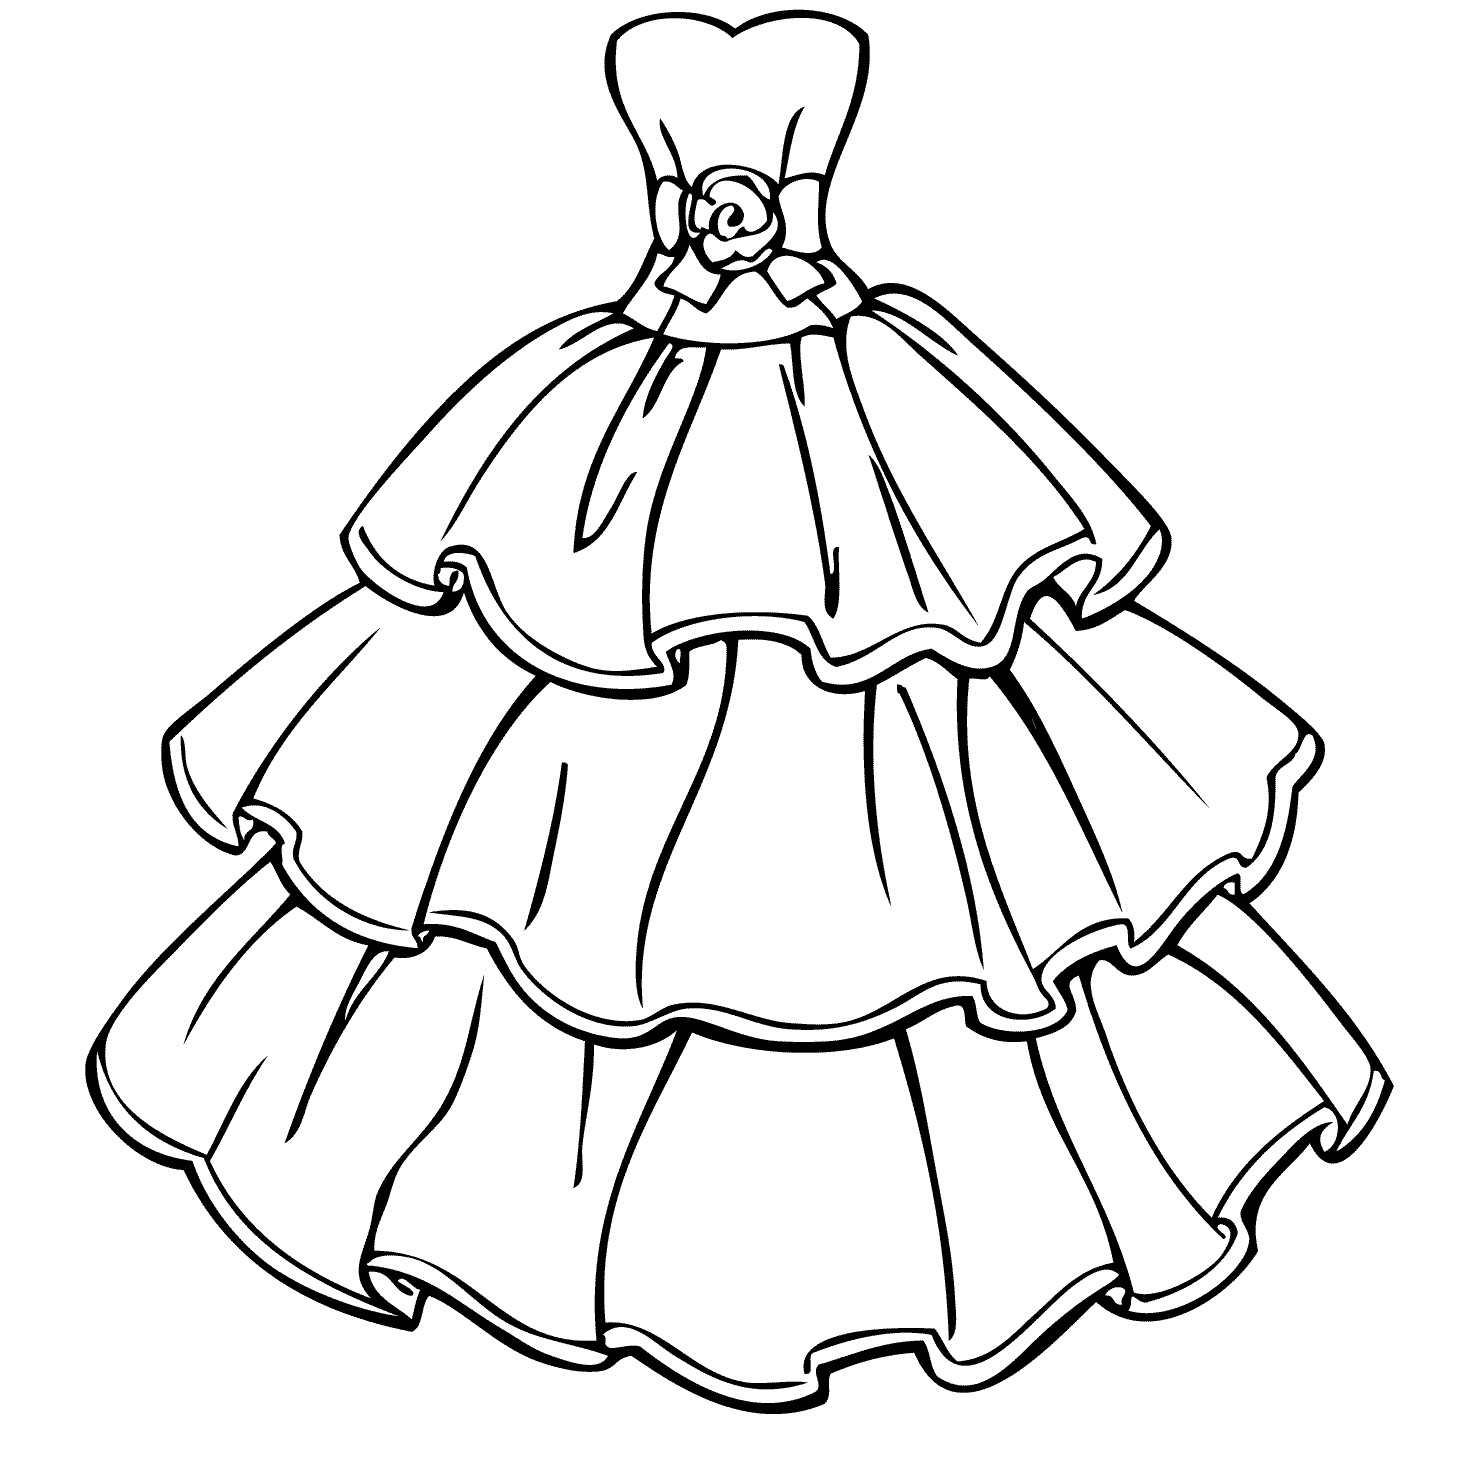 free dress coloring pages dress coloring pages to download and print for free pages coloring free dress